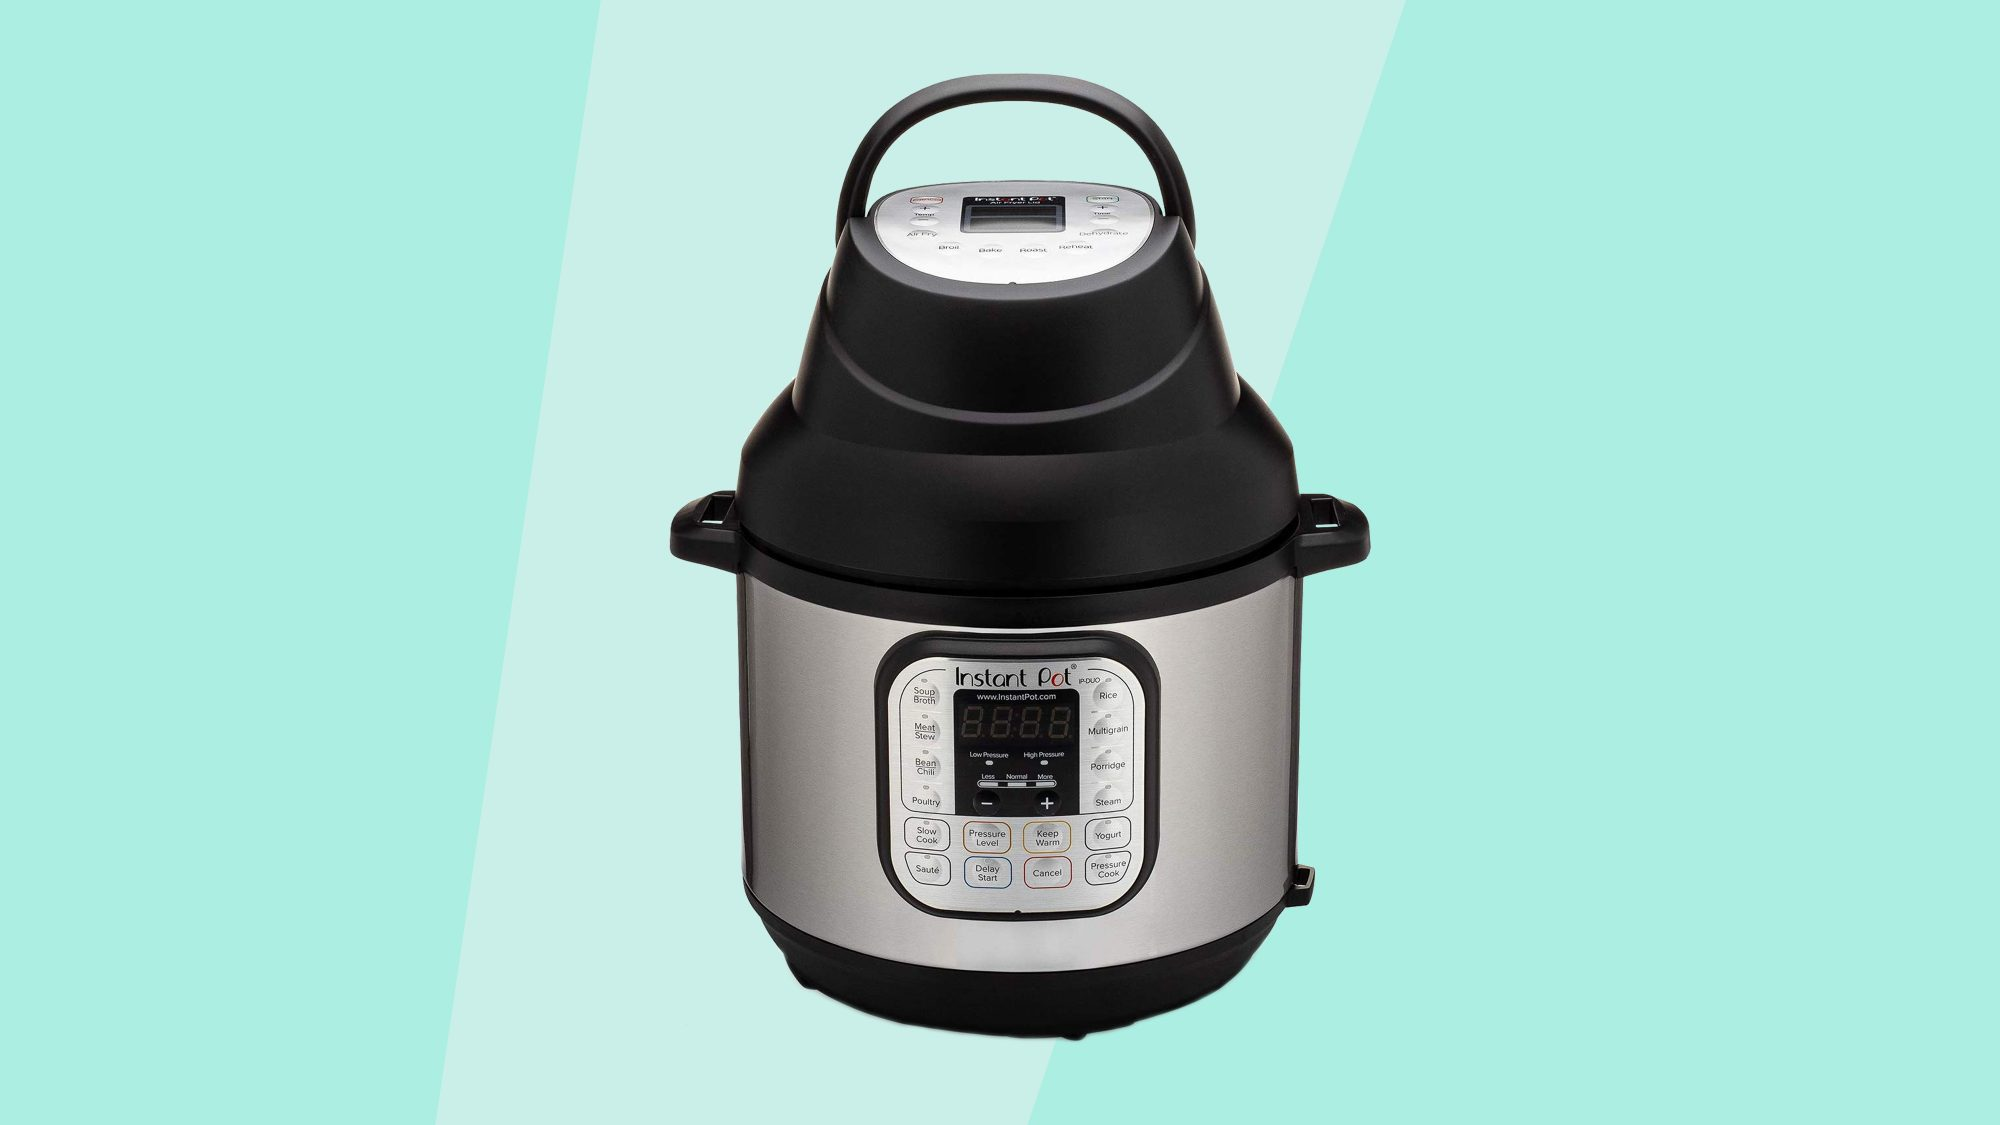 Instant Pot Lid with Roast Bake, Broil, Reheat & Dehydrate Air Fryer